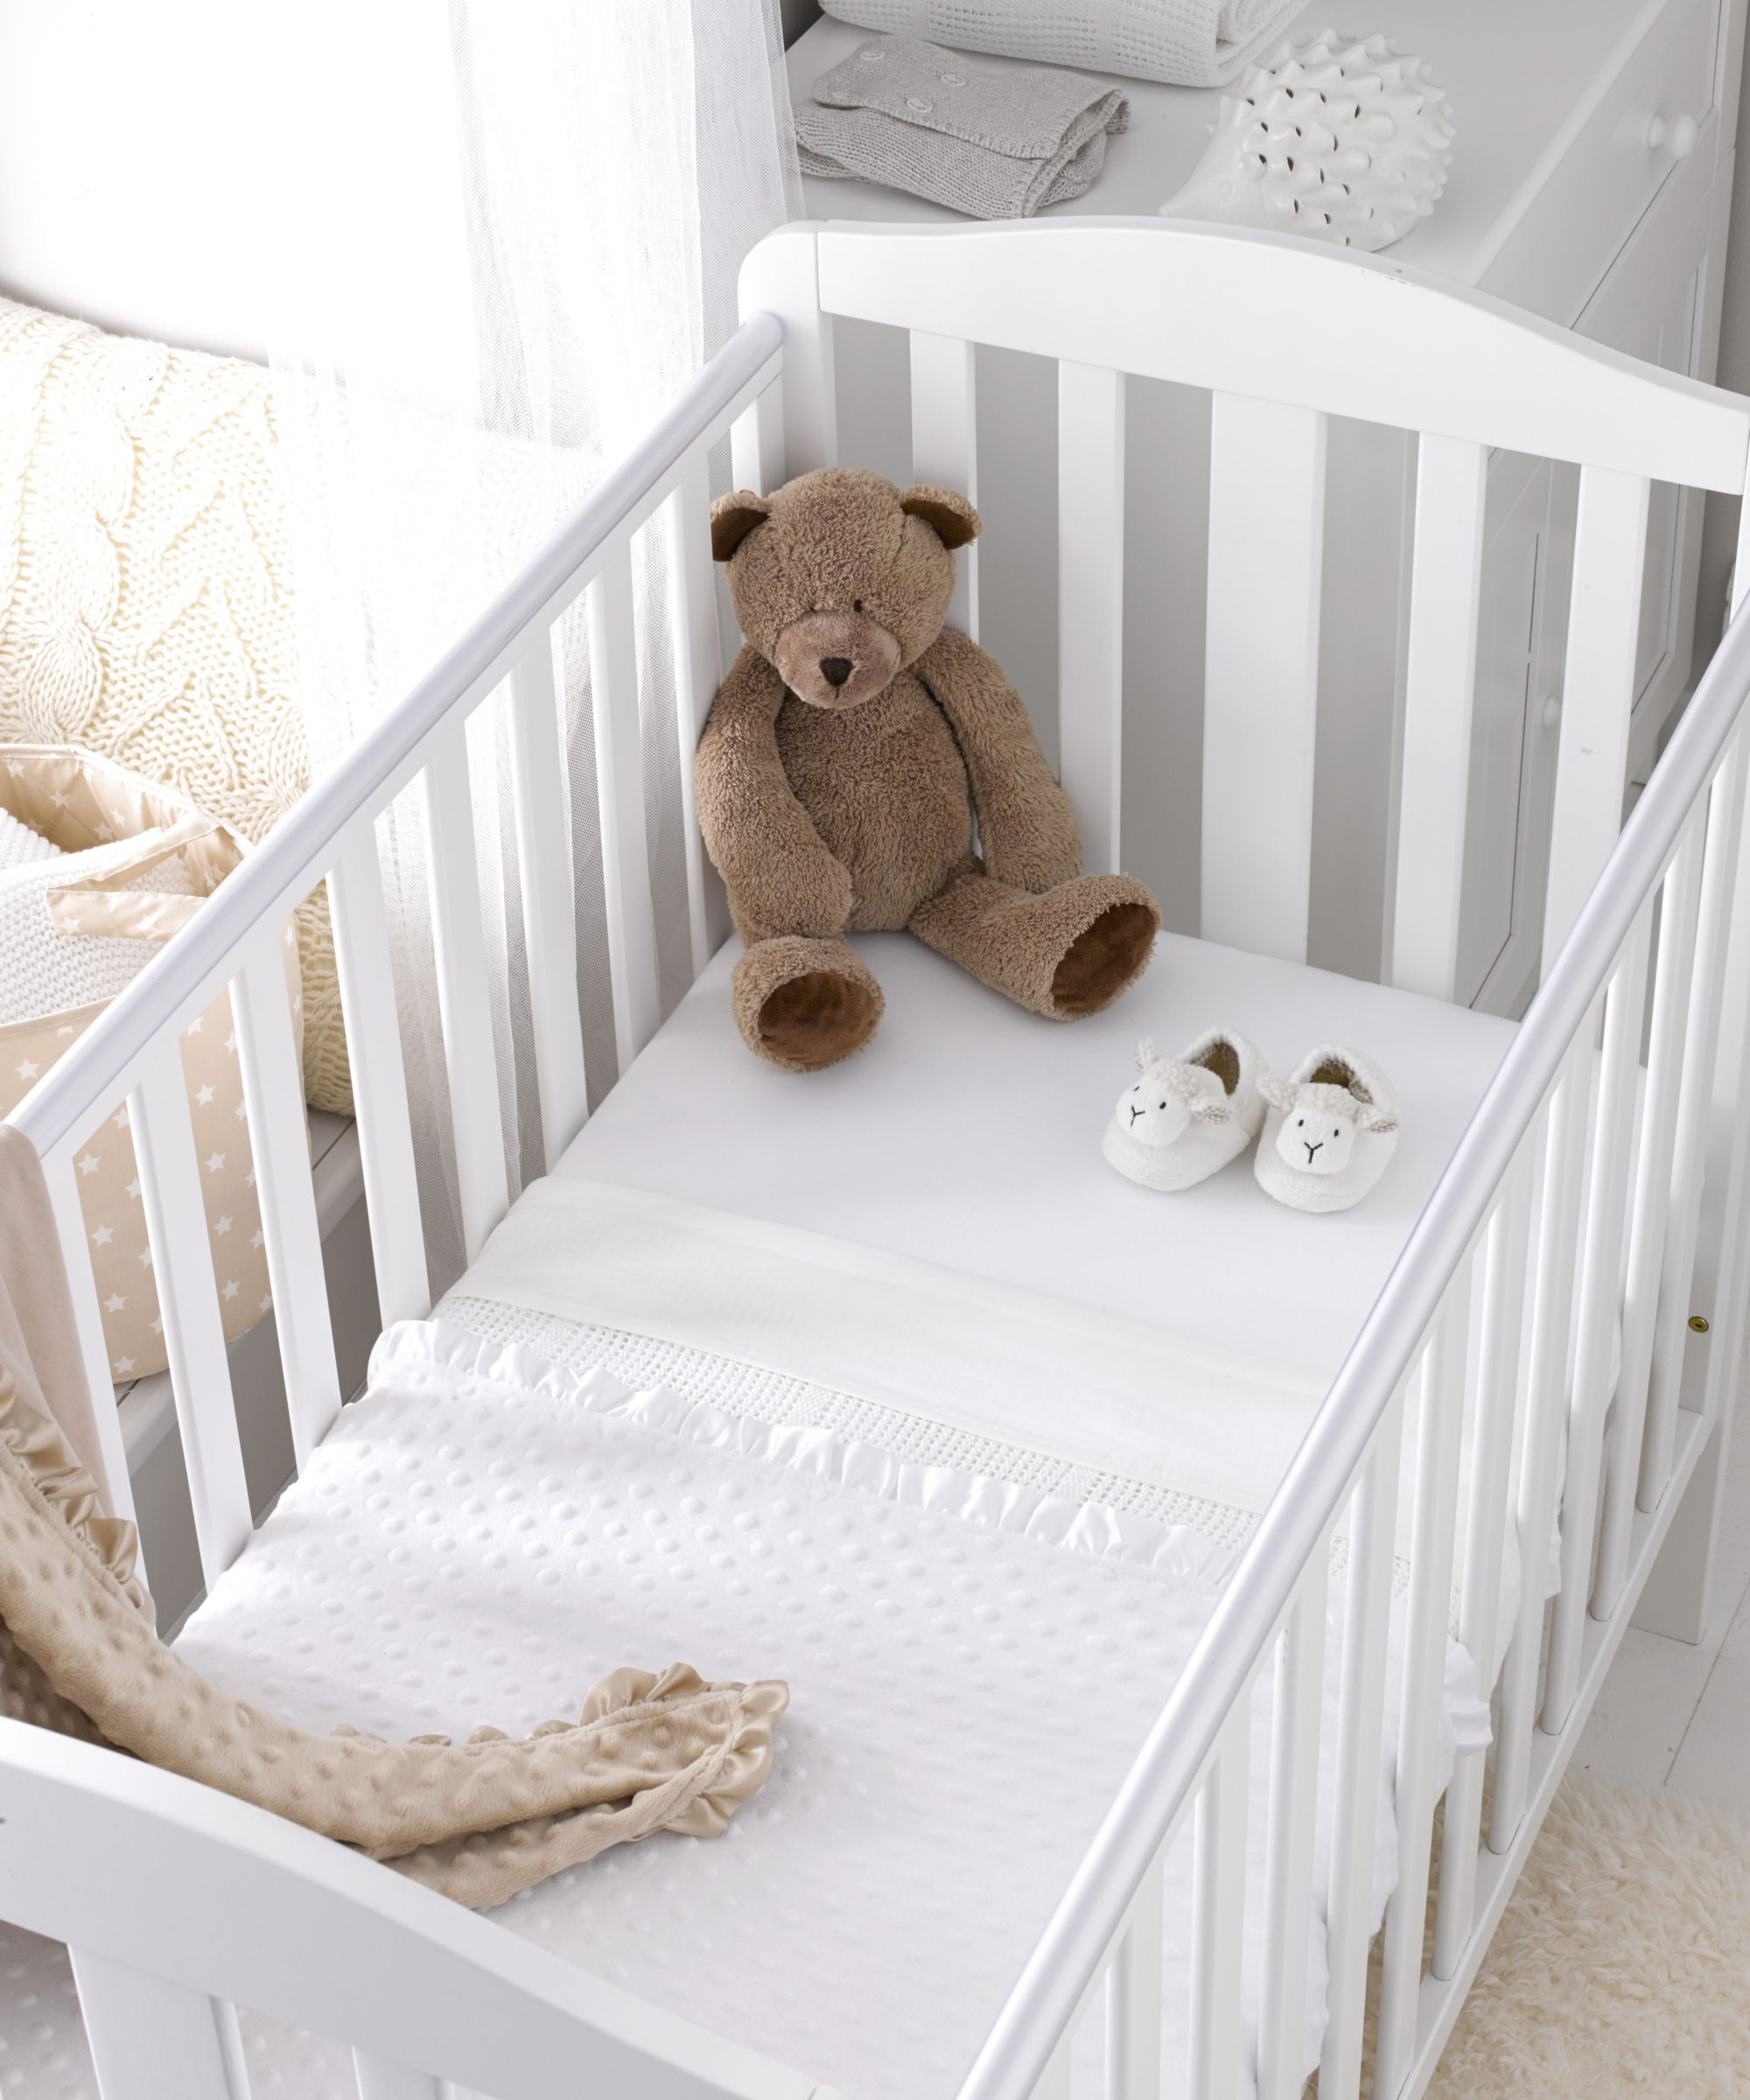 Best crib sheets for baby with eczema - Cribs